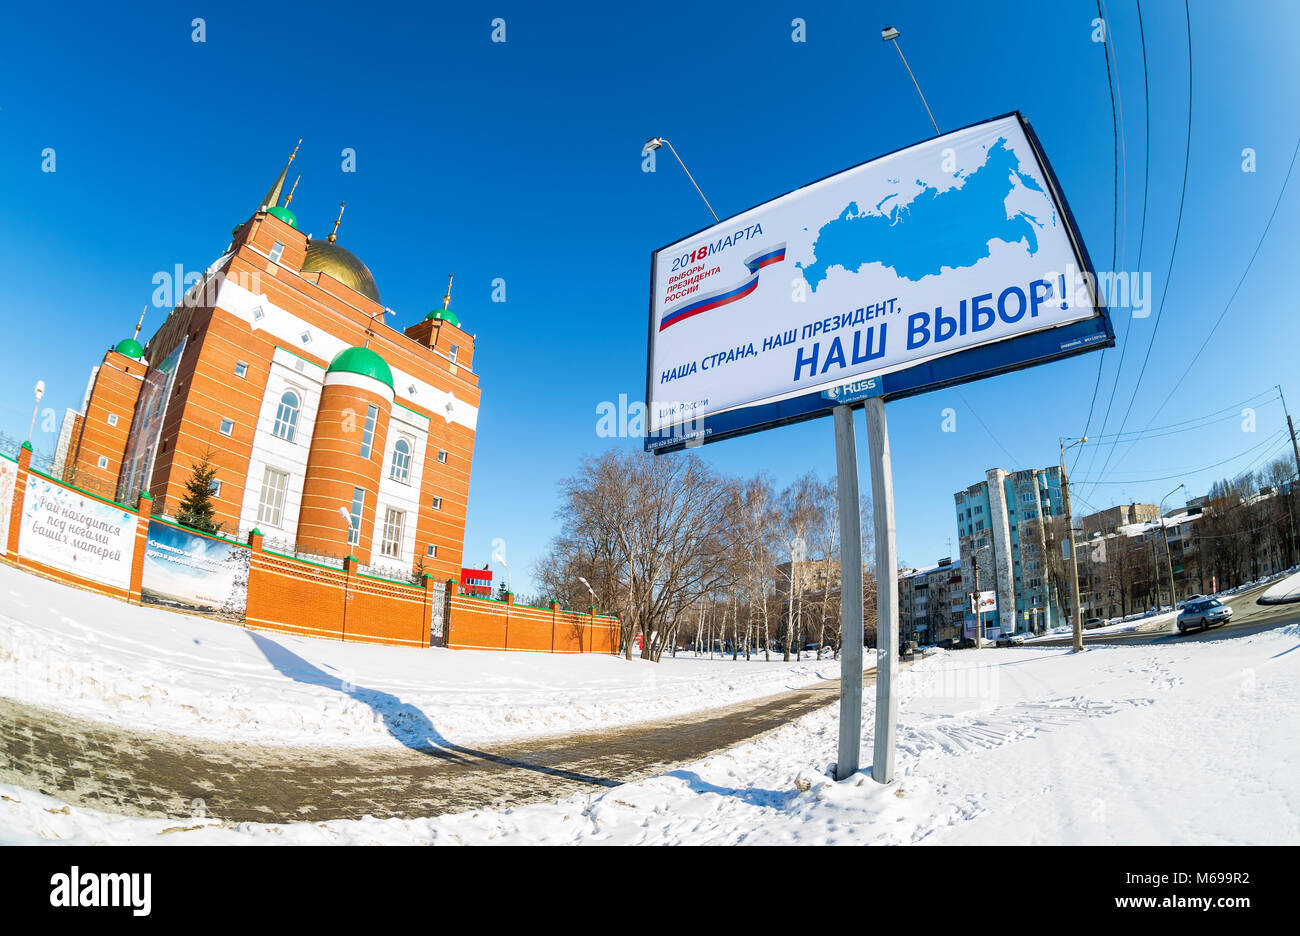 Samara, Russia - March 1, 2018: Election of the President of Russia in March 18, 2018. Election street billboard - Stock Image